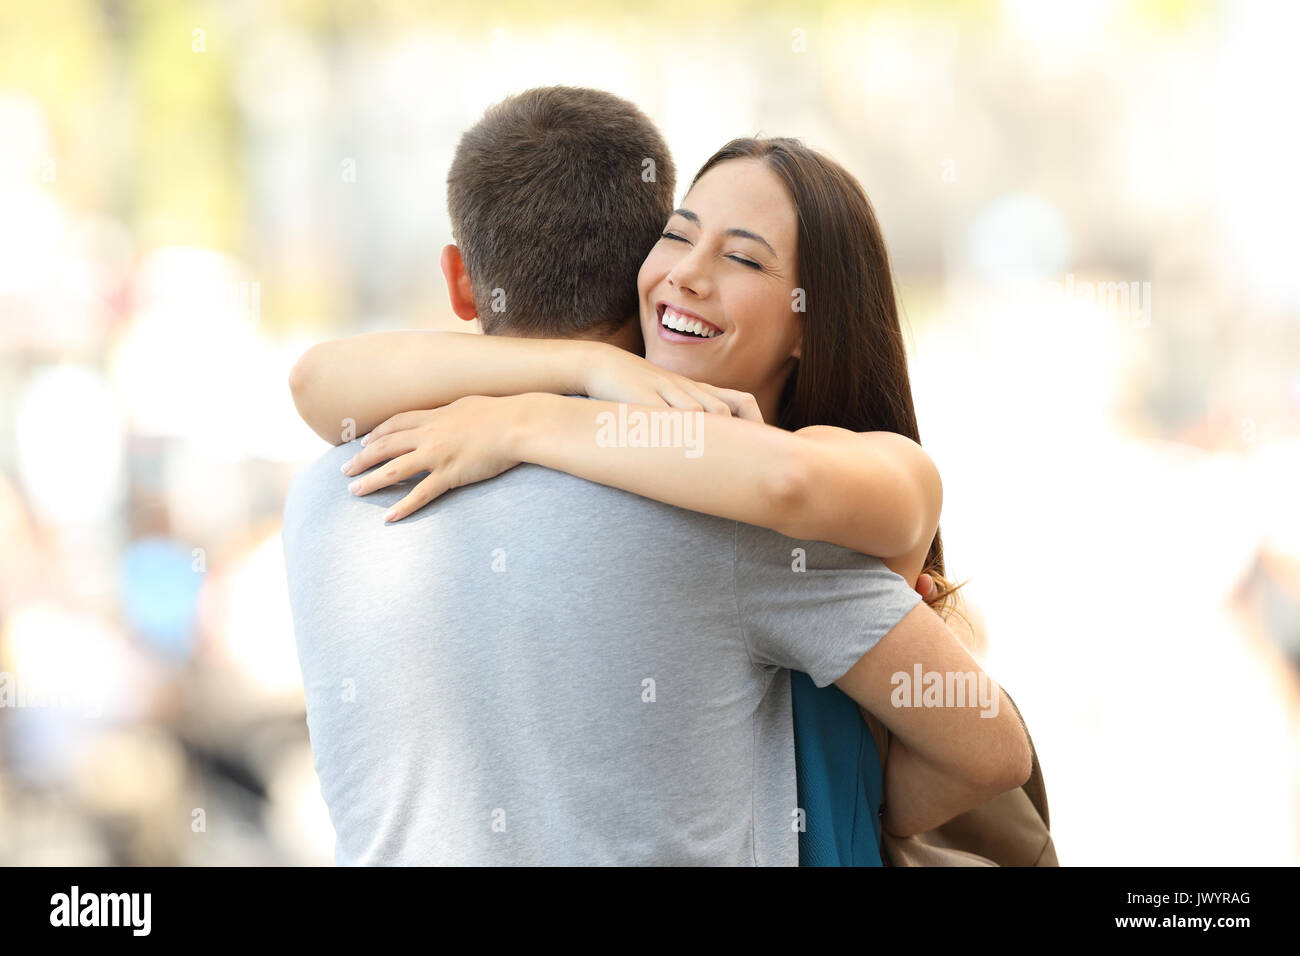 Happy girlfriend hugging her partner after encounter on the street - Stock Image